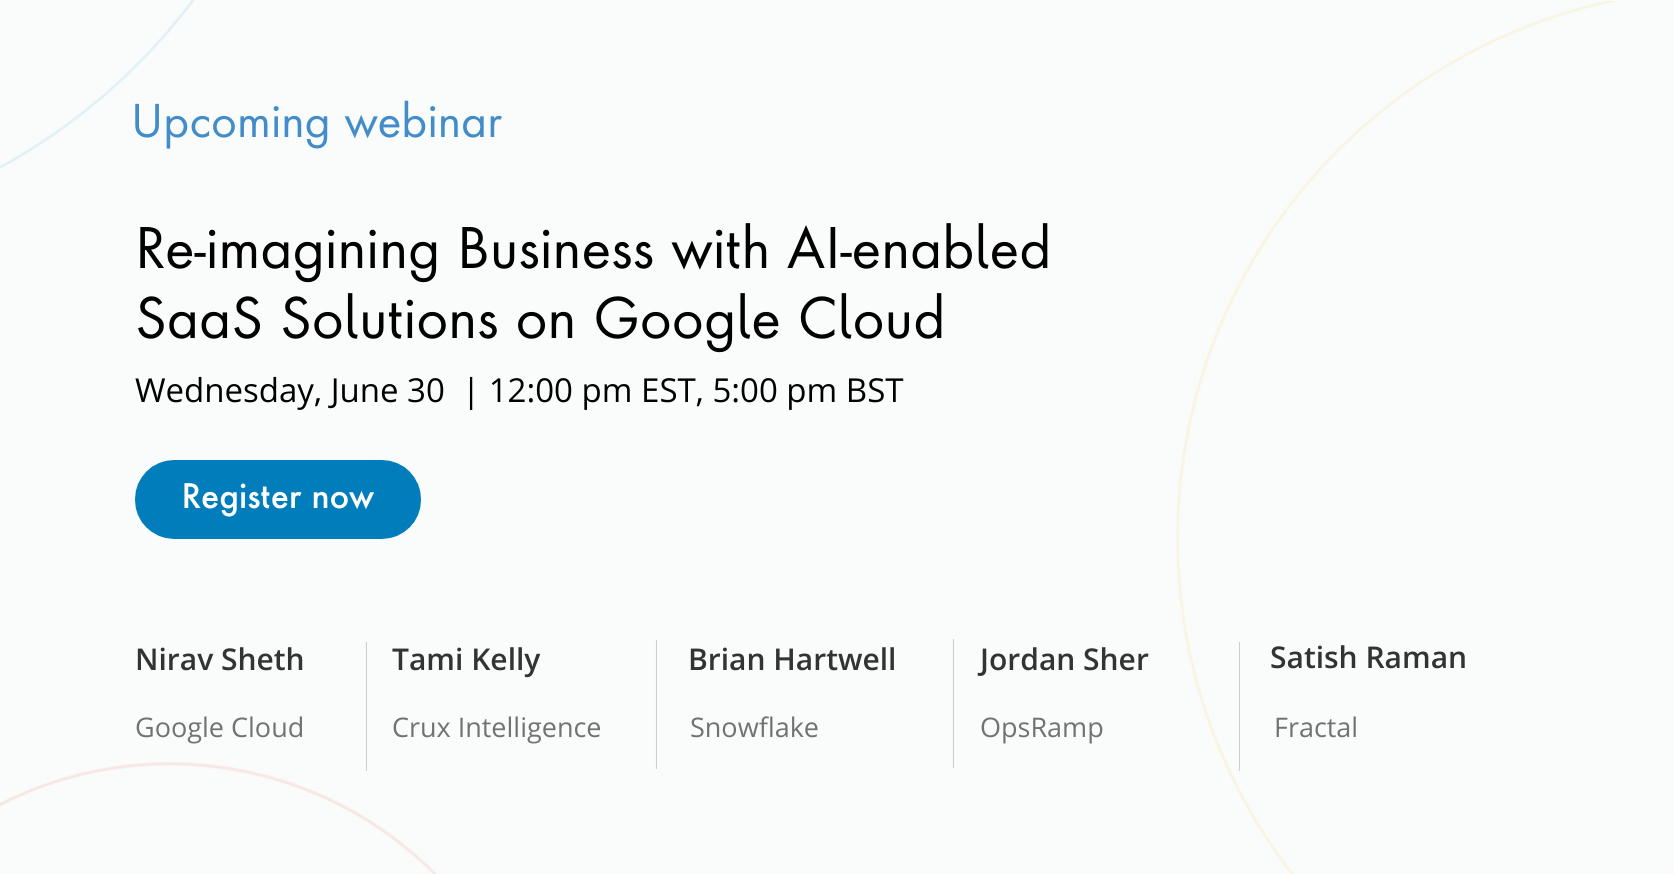 Re-imagining Business with AI-enabled SaaS Solutions on Google Cloud